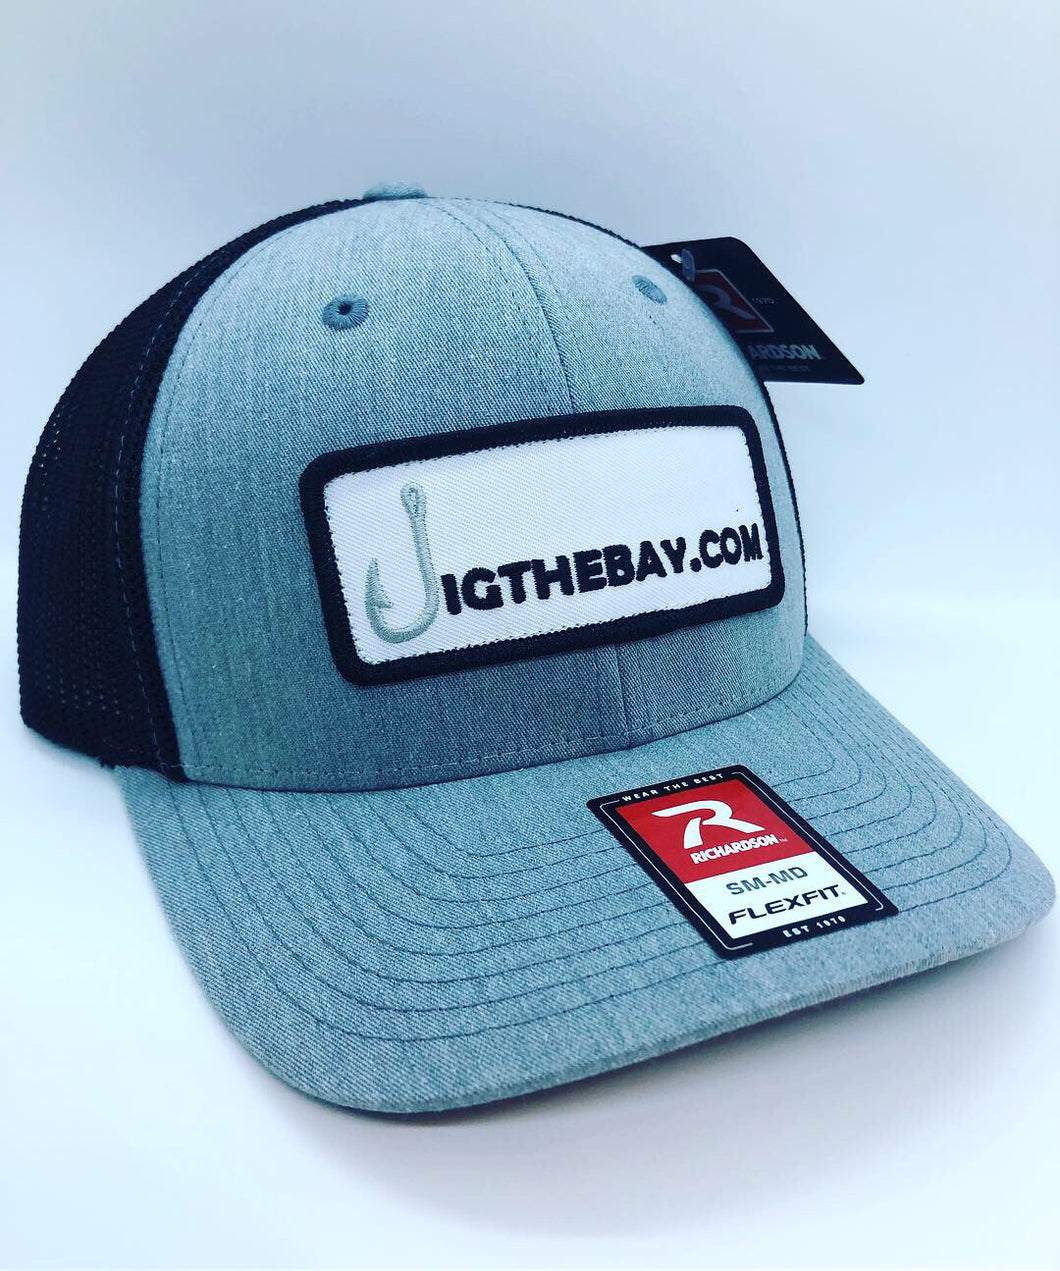 Jigthebay.com Flex Fitted Hat